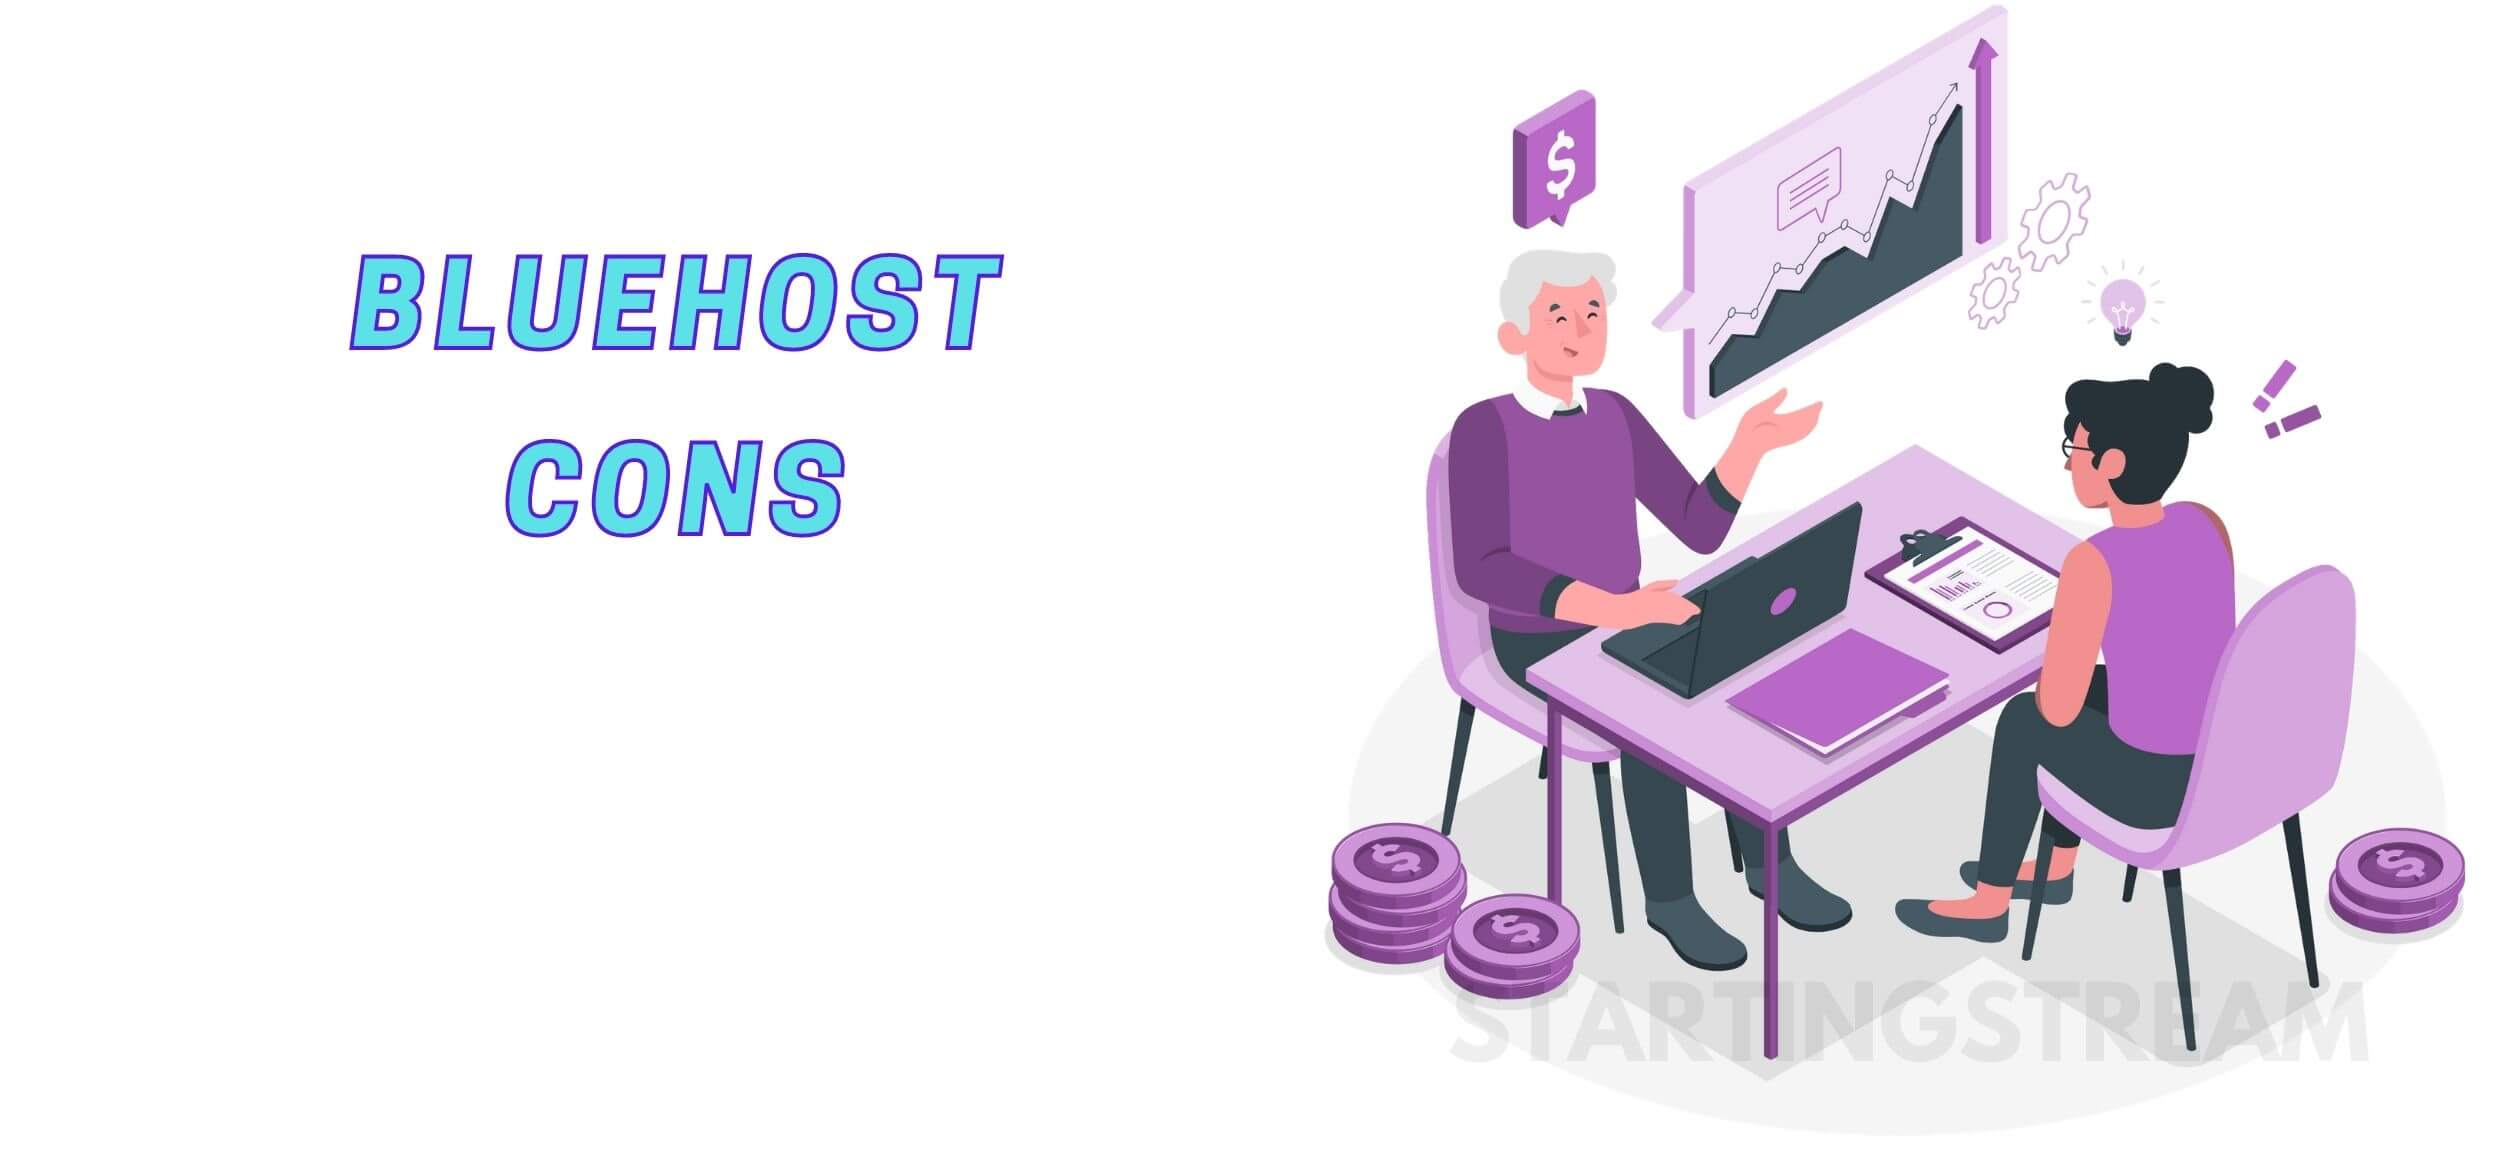 Bluehost cons